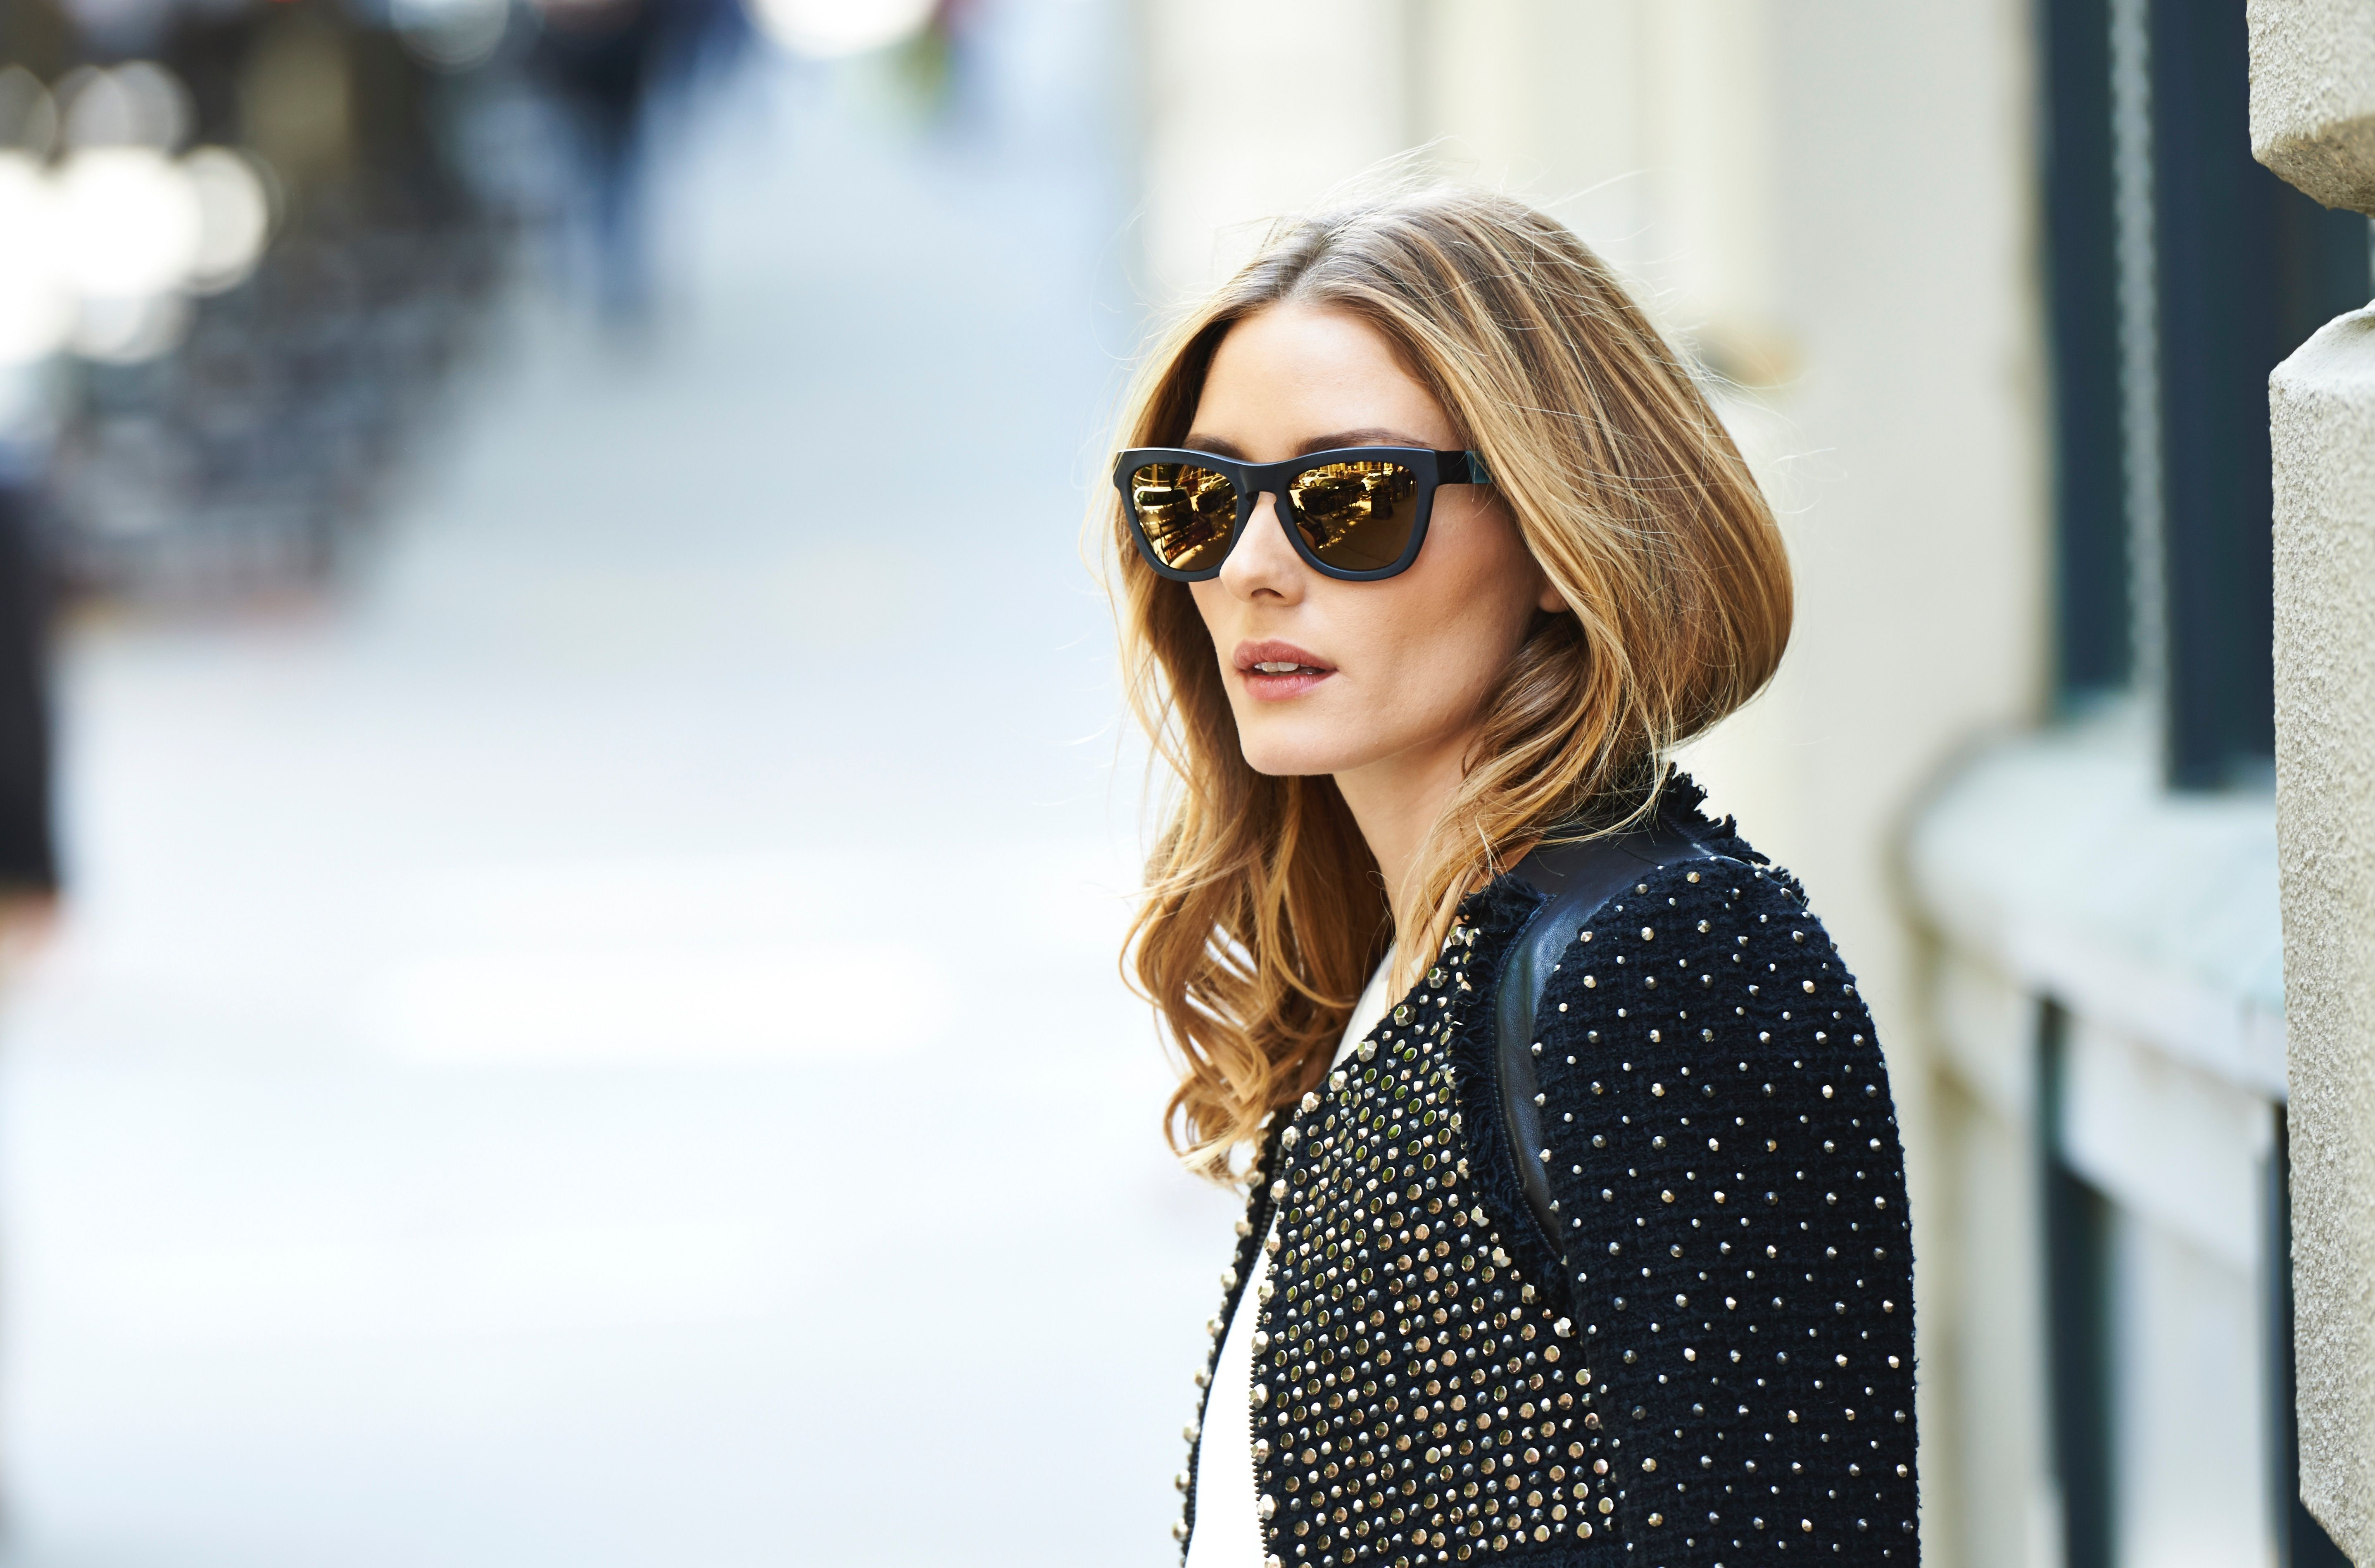 The classic Wayfarer shape of each frame holds a unisex appeal to all wearers. Shop the look from the OliviaPalermo.com x Westward Leaning collection.